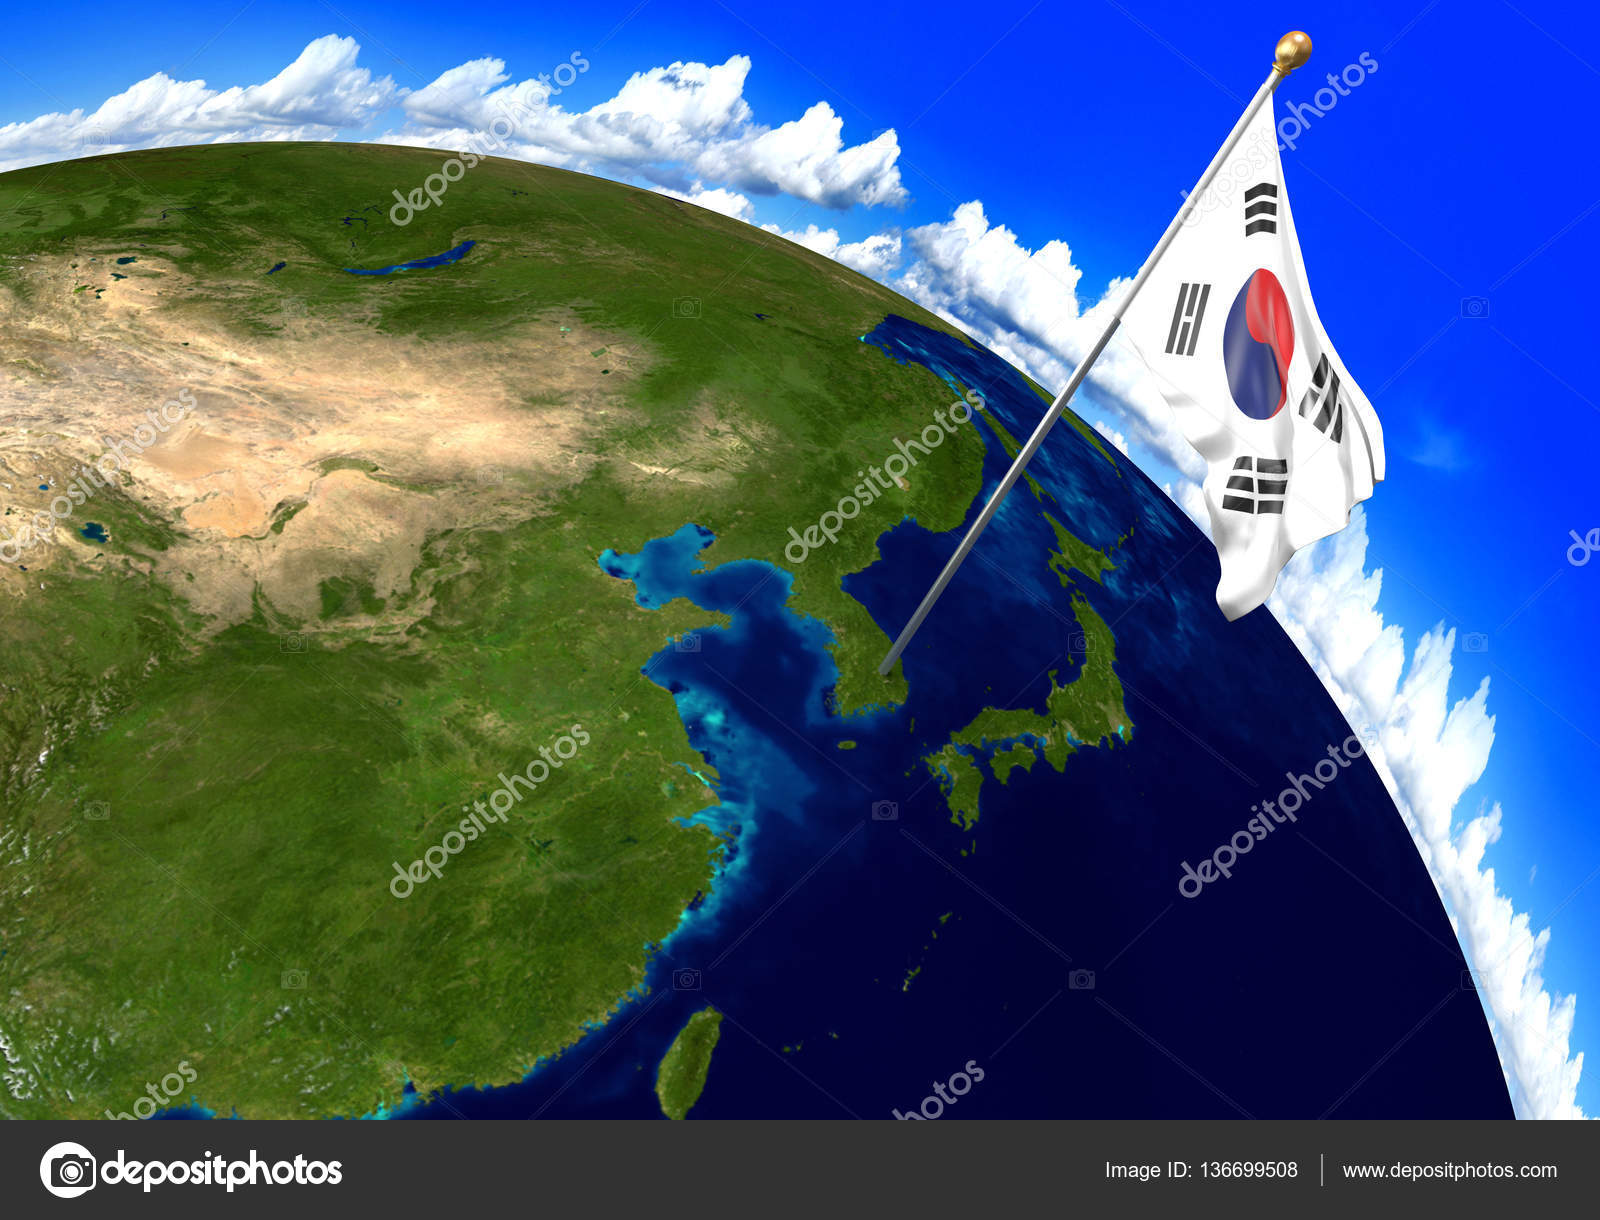 South korea national flag marking the country location on world map 3d render of the national flag of south korea over the geographic location of the country on a world map parts of this image furnished by nasa gumiabroncs Images